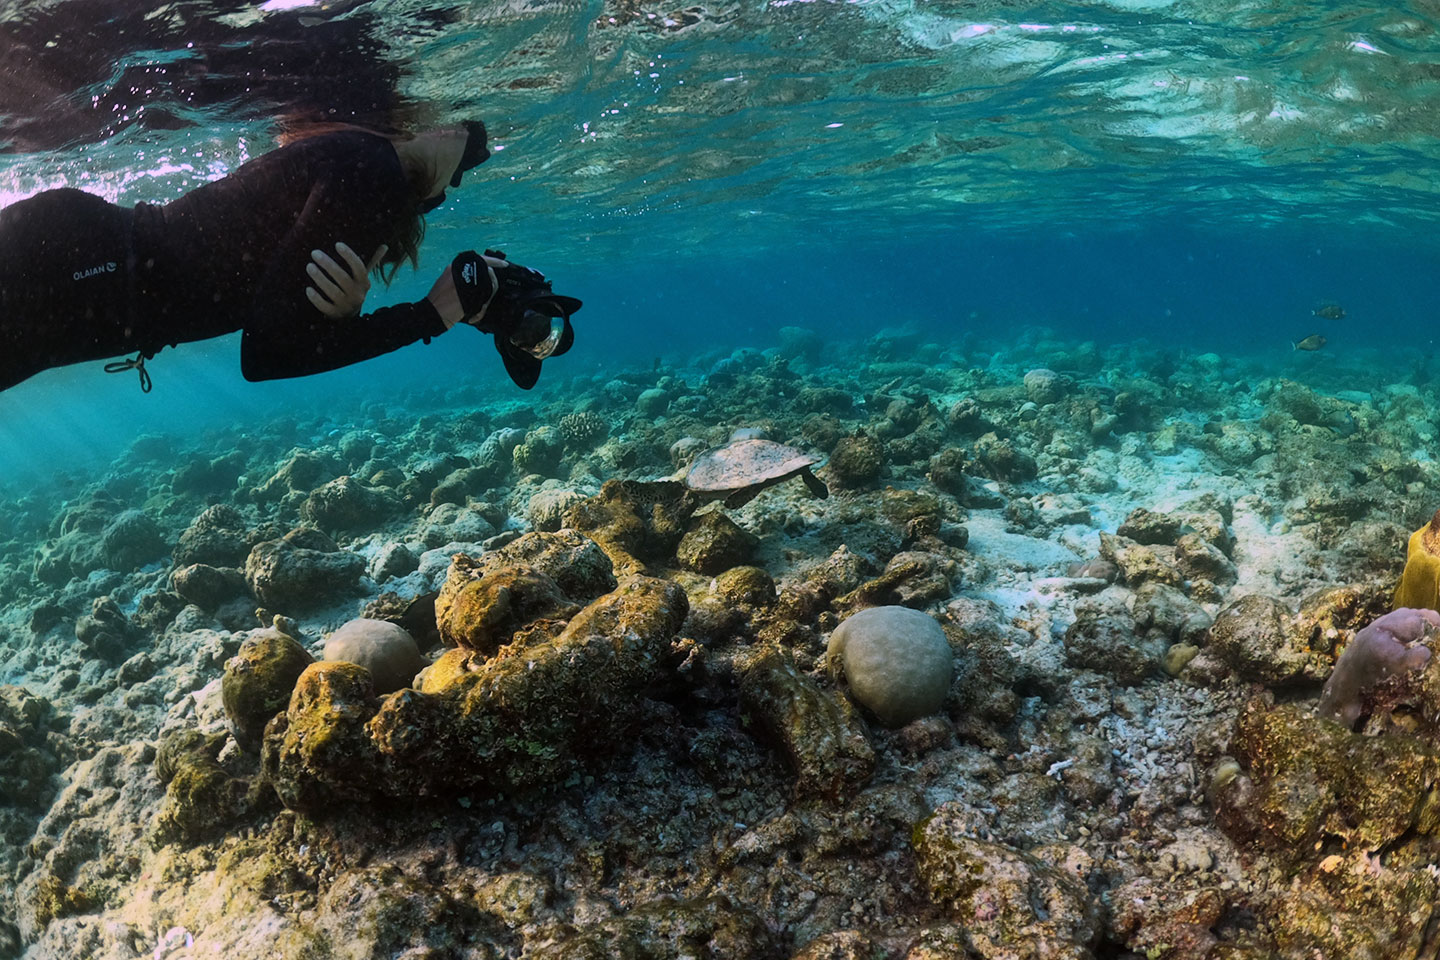 Snorkeler is taking photos of a turtle